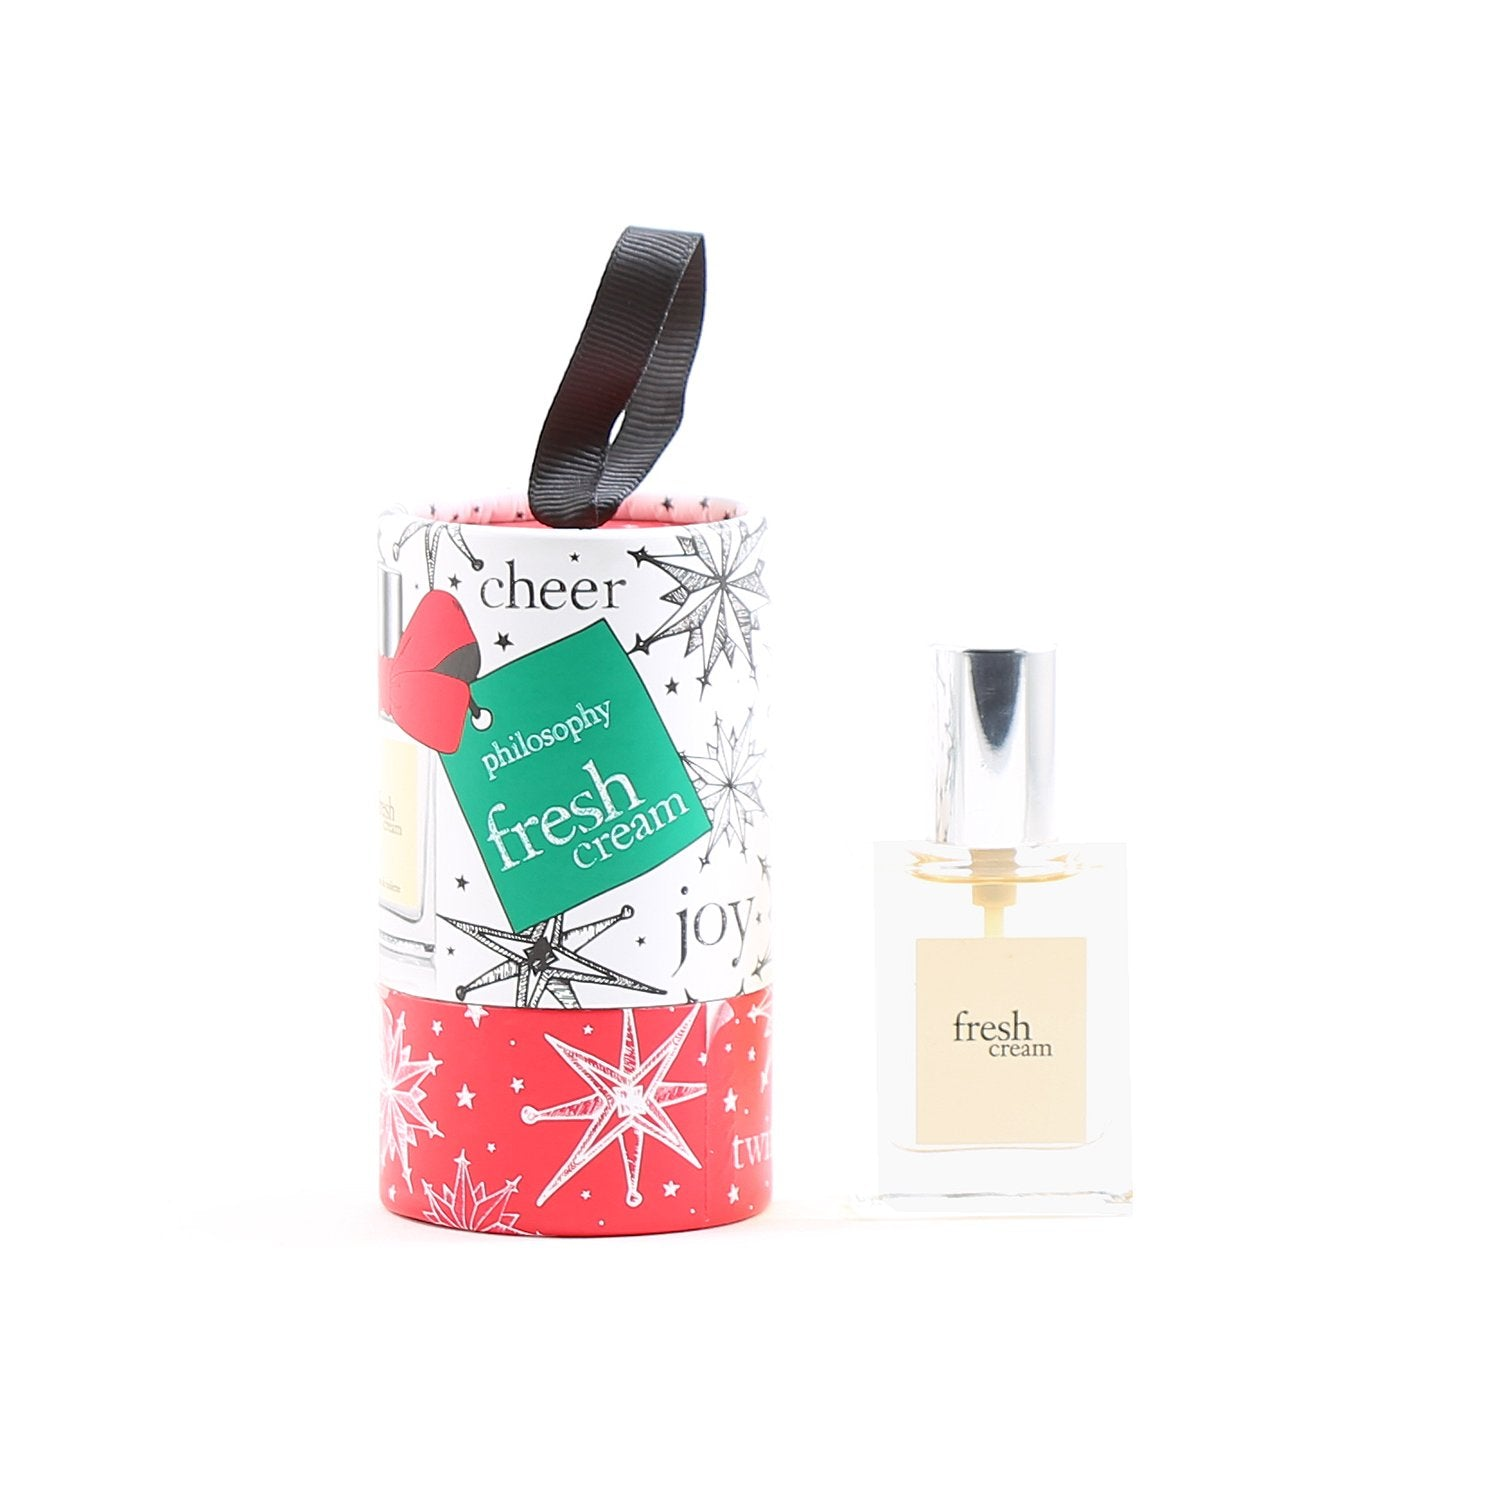 Perfume - PHILOSOPHY FRESH CREAM HOLIDAY EDITION FOR WOMEN - EAU DE TOILETTE SPRAY, 0.5 OZ